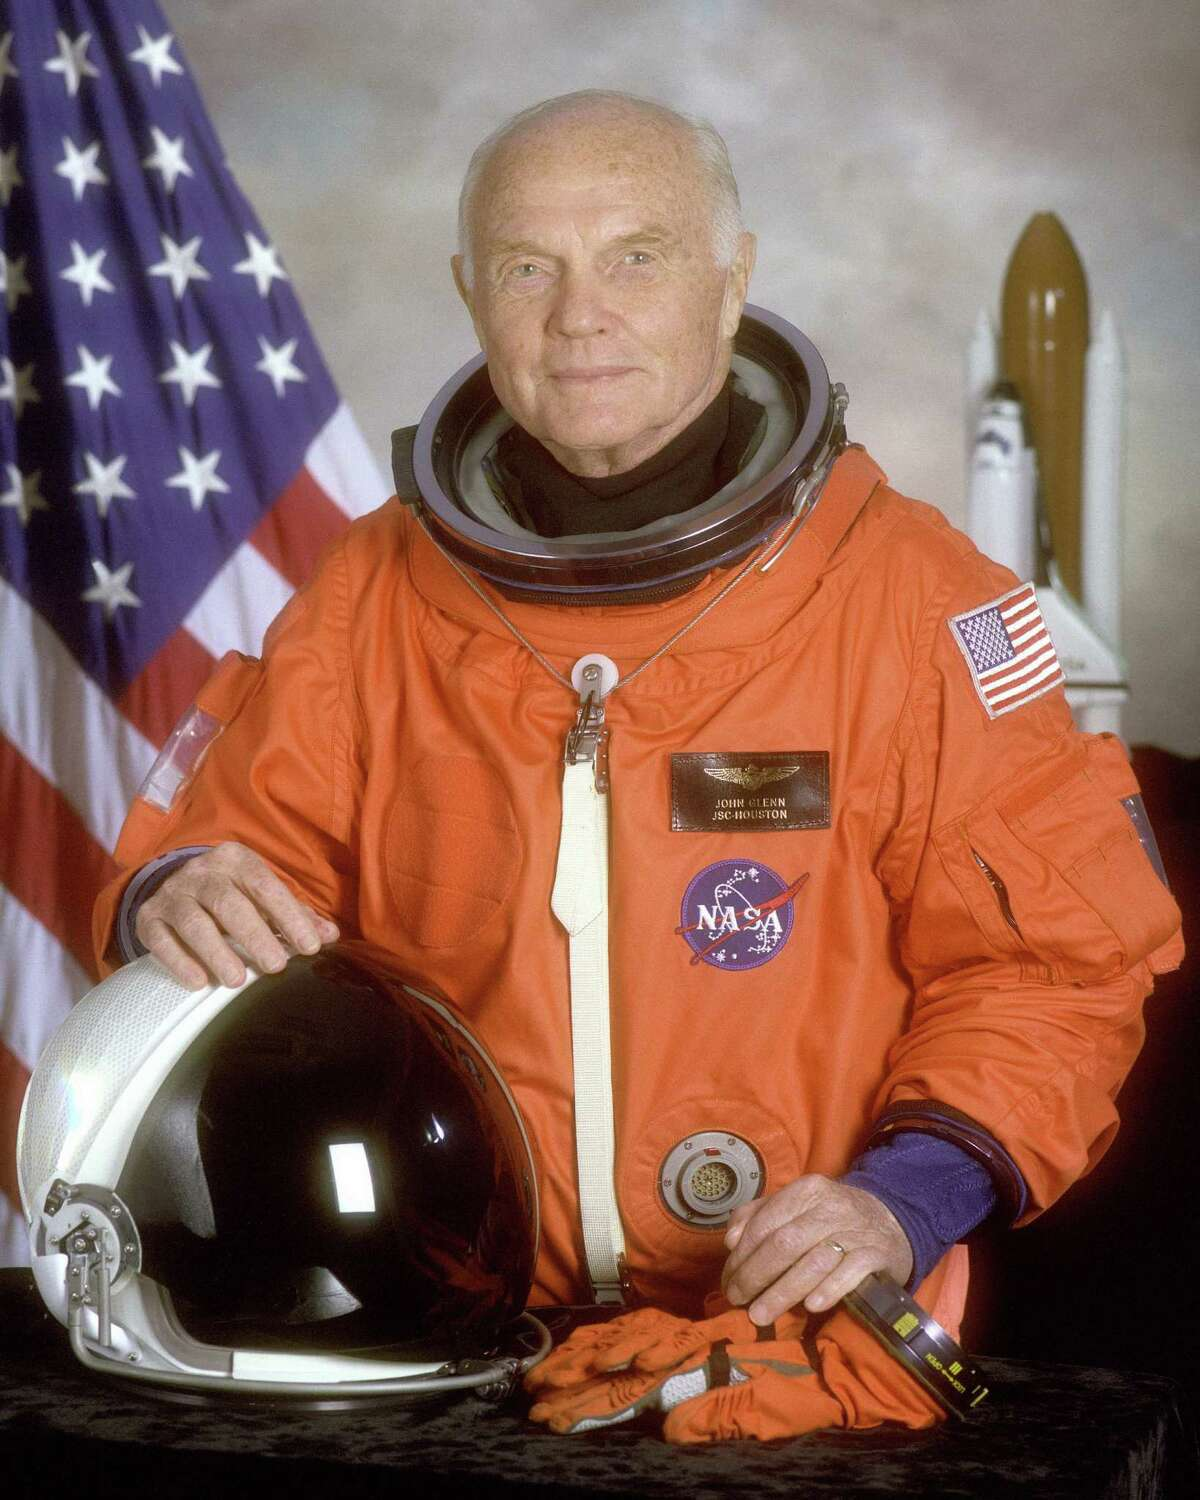 STS-95 crewmember, astronaut and then-U.S. Sen. John Glenn was the first American to orbit the earth and returned to space in 1998 aboard a Space Shuttle flight in 1998. Glenn died at the age of 95.